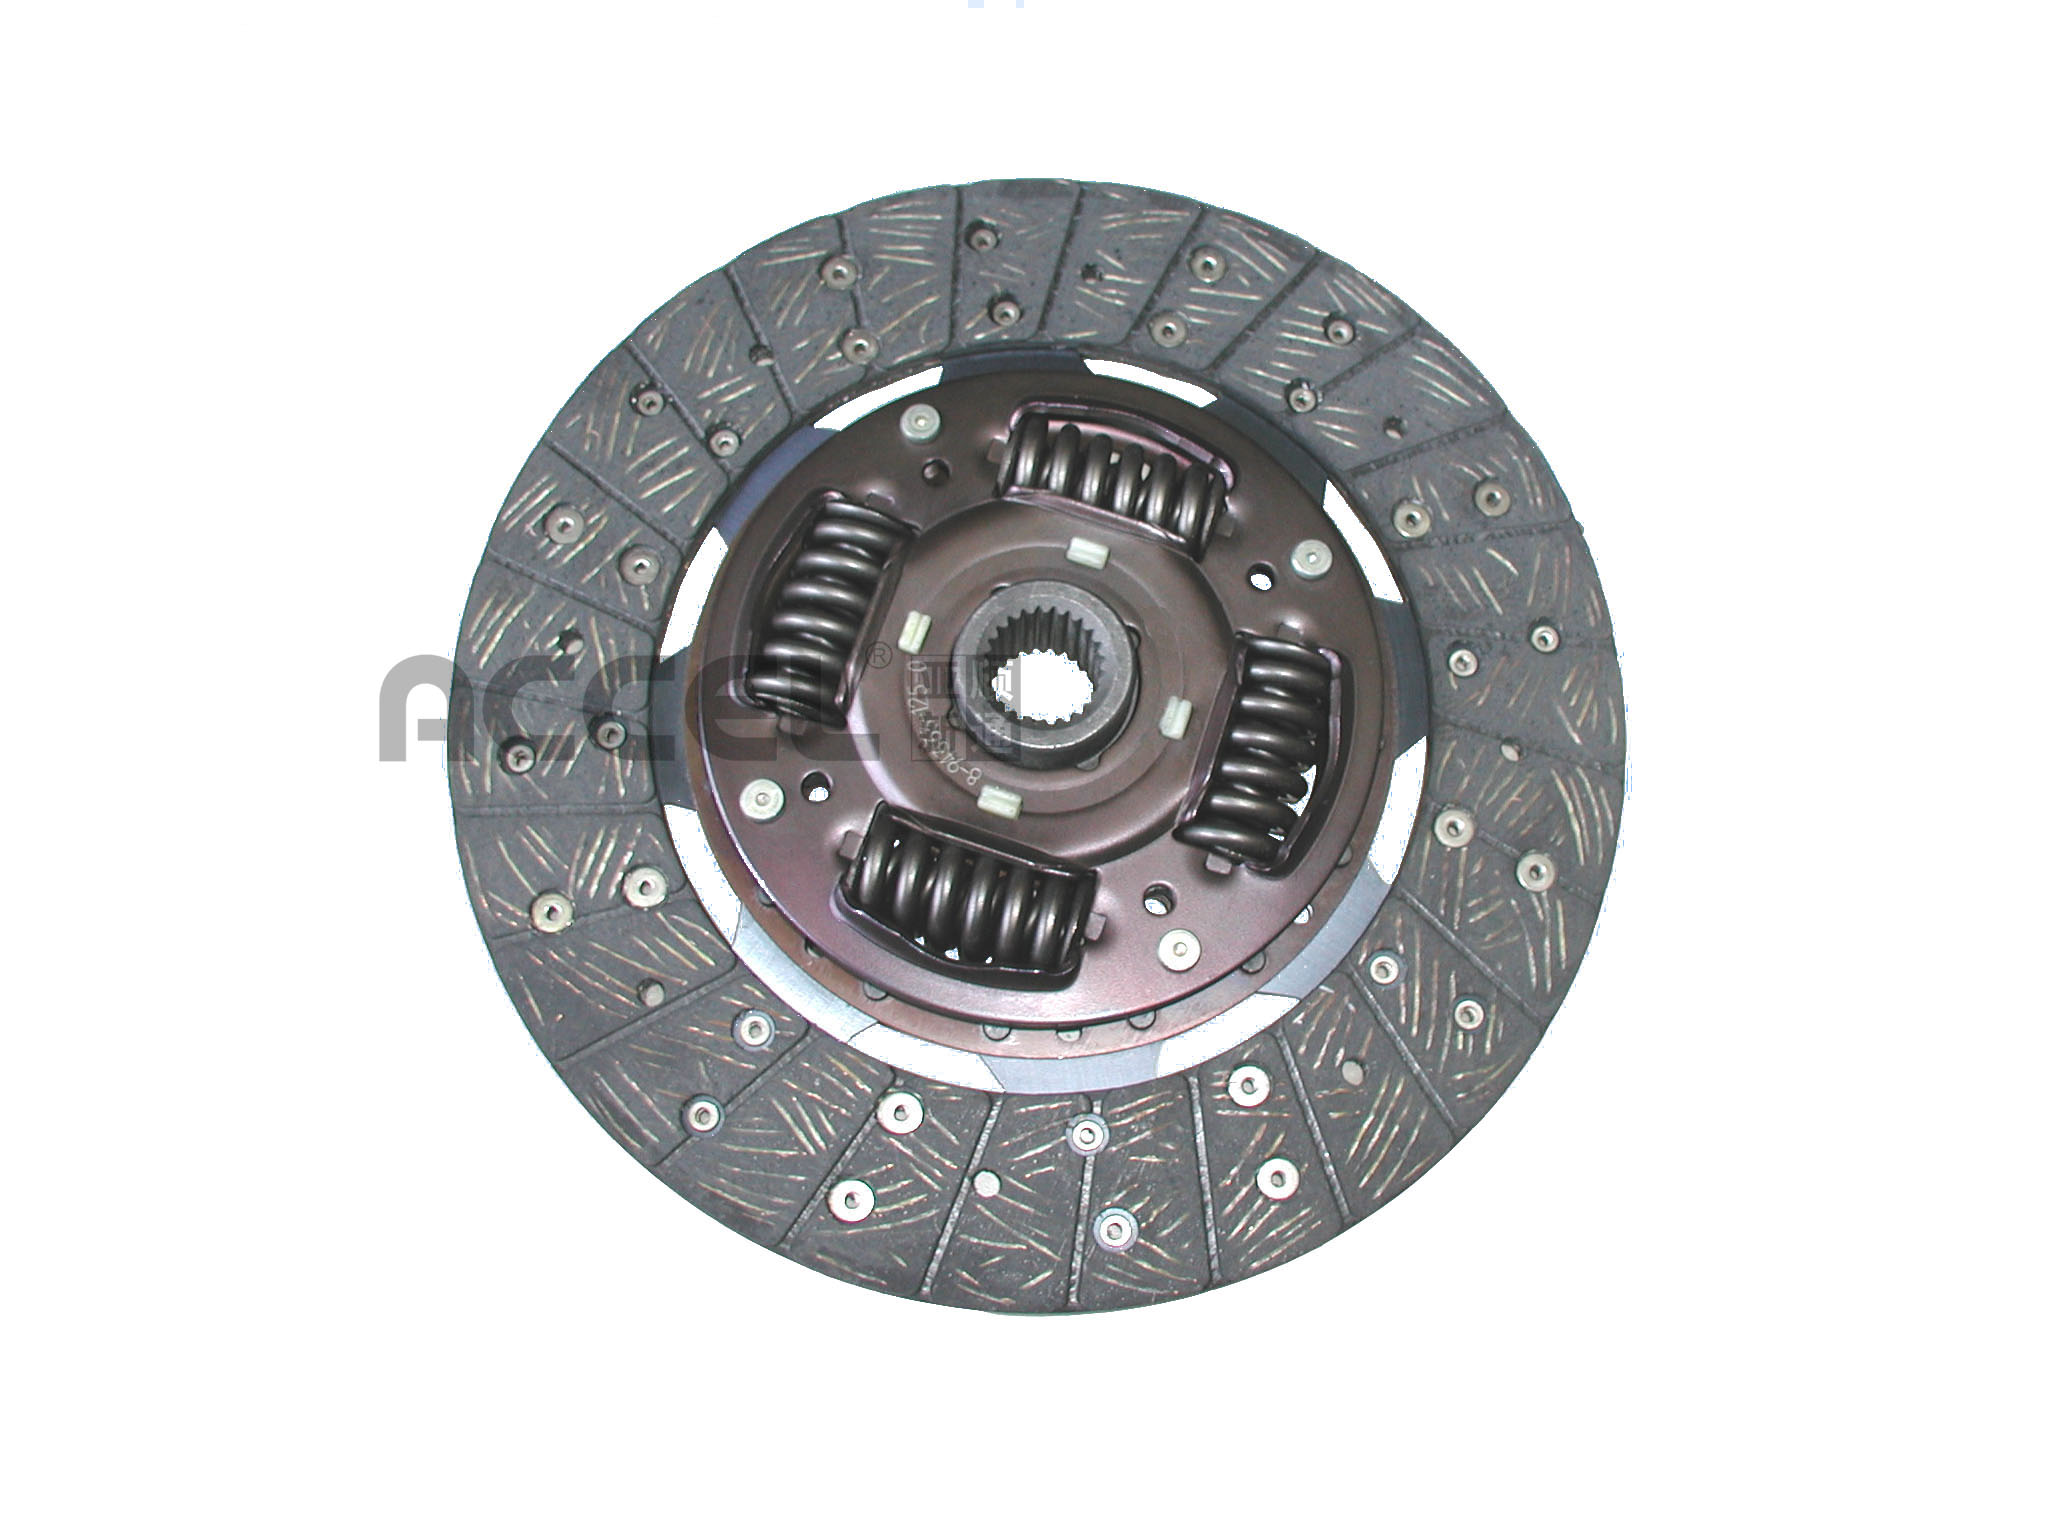 Clutch Disc/OE:8-94171-965-1/260*170*24*25.6/AIS-041/ISUZU/CL0500/ISD109US